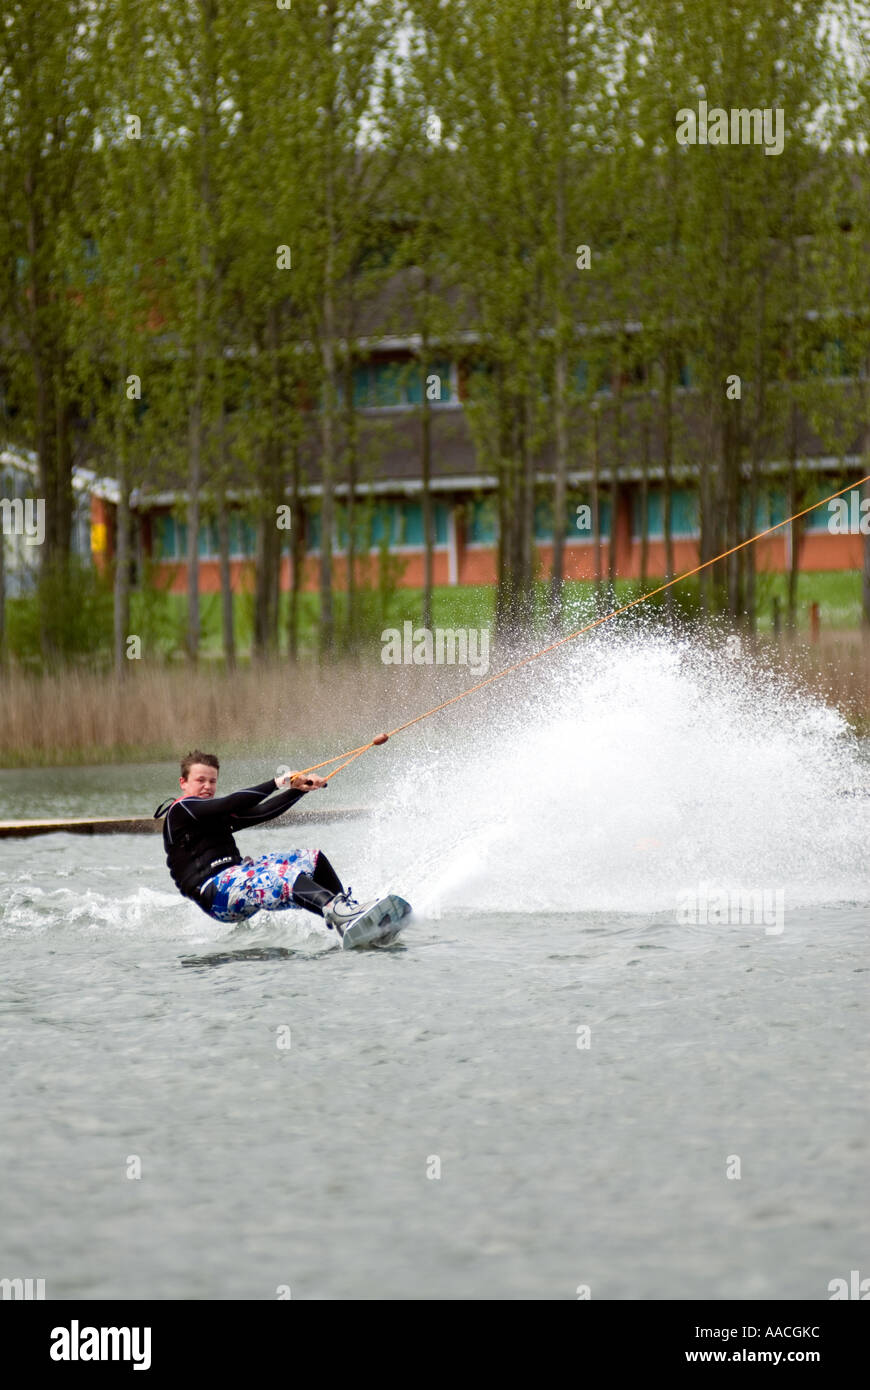 wakeboard wakeboarding extreme xtreme action sport spray Willen Lake water Milton Keynes MK - Stock Image